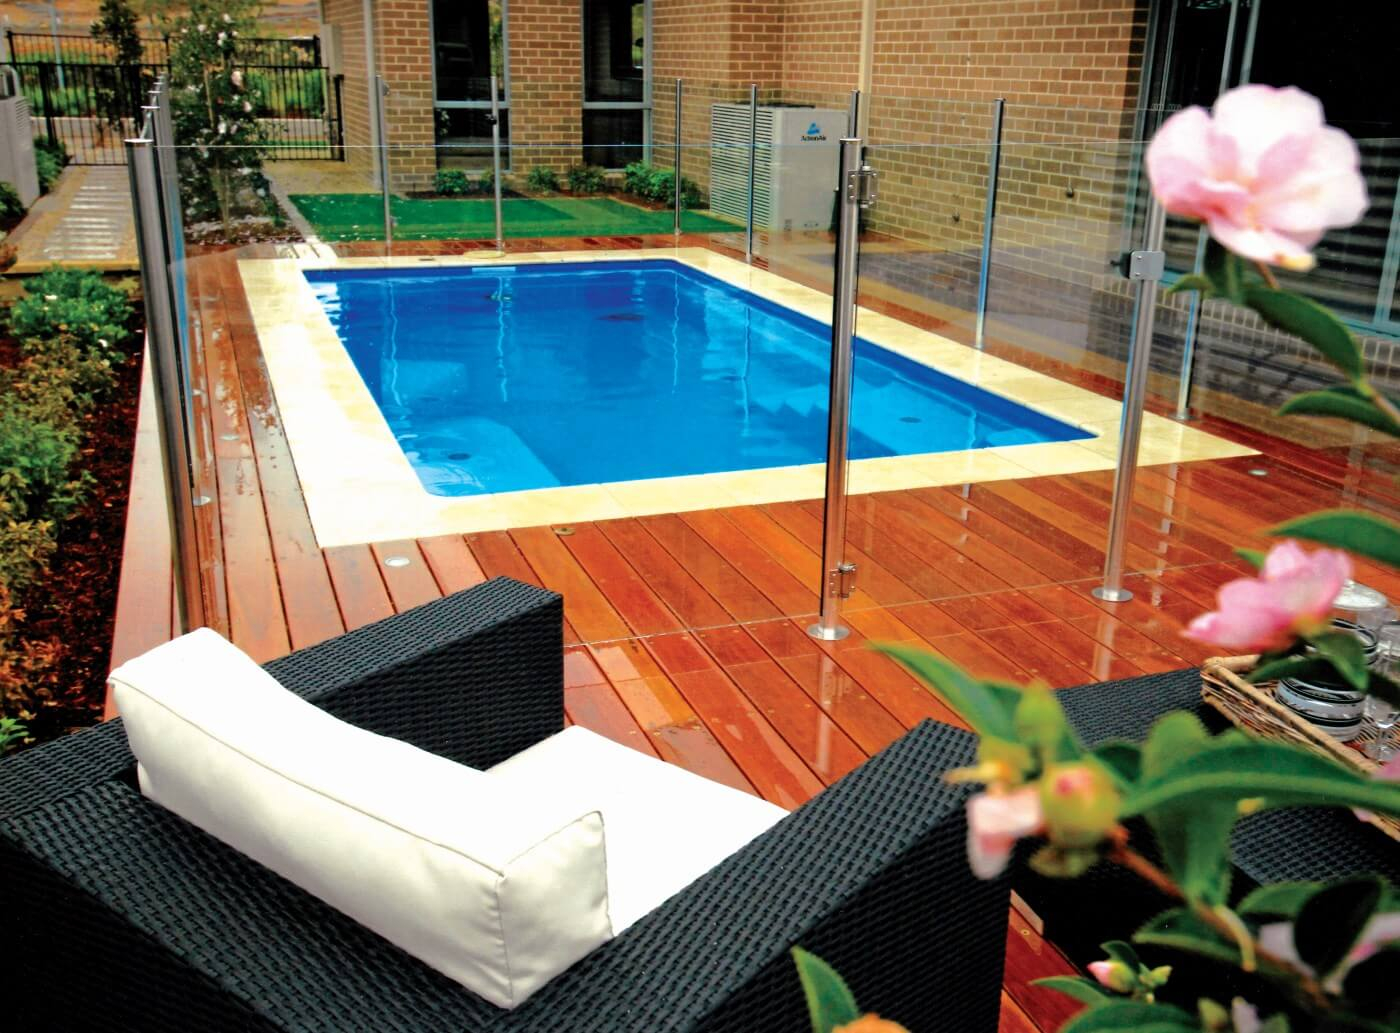 The Best Pool Design Ideas For Your Backyard Compass Pools Australia with 14 Some of the Coolest Tricks of How to Build Backyard Design Ideas With Pool